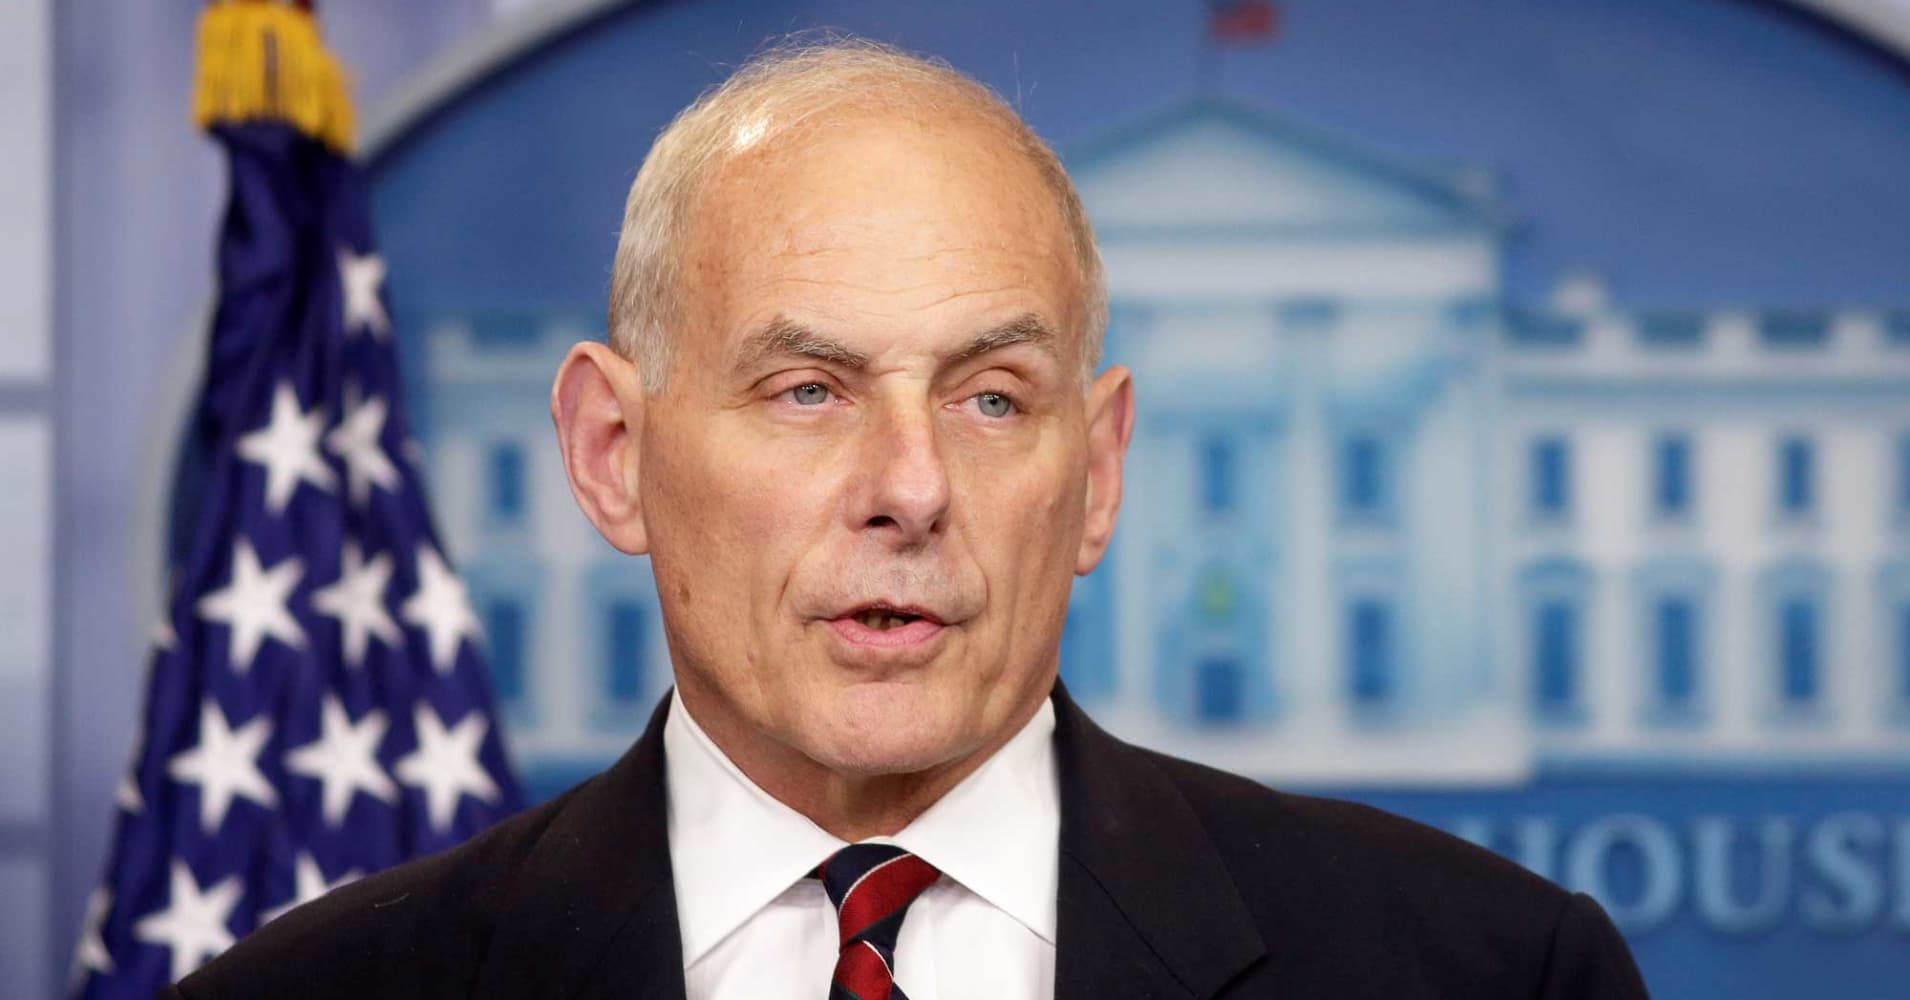 meet john f. kelly, donald trump's new white house chief of staff